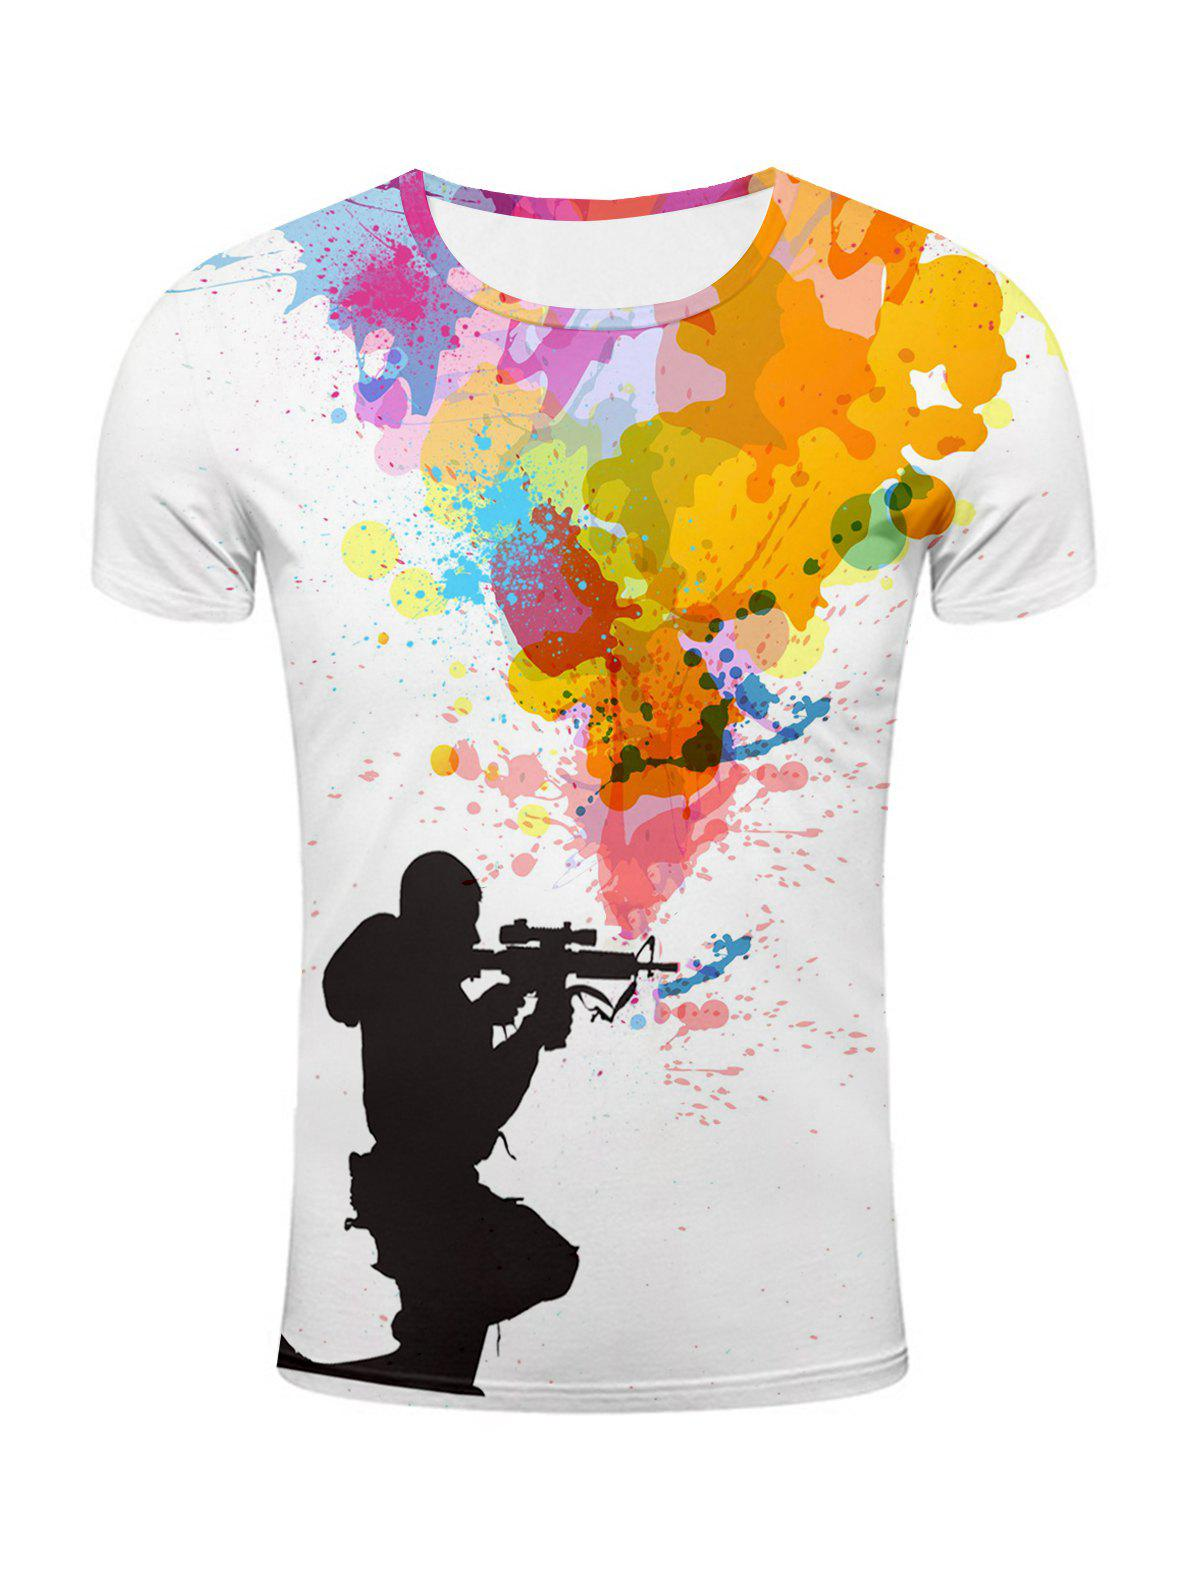 Sniper and Colorful Splatter Paint Printed T-Shirt - COLORMIX 2XL